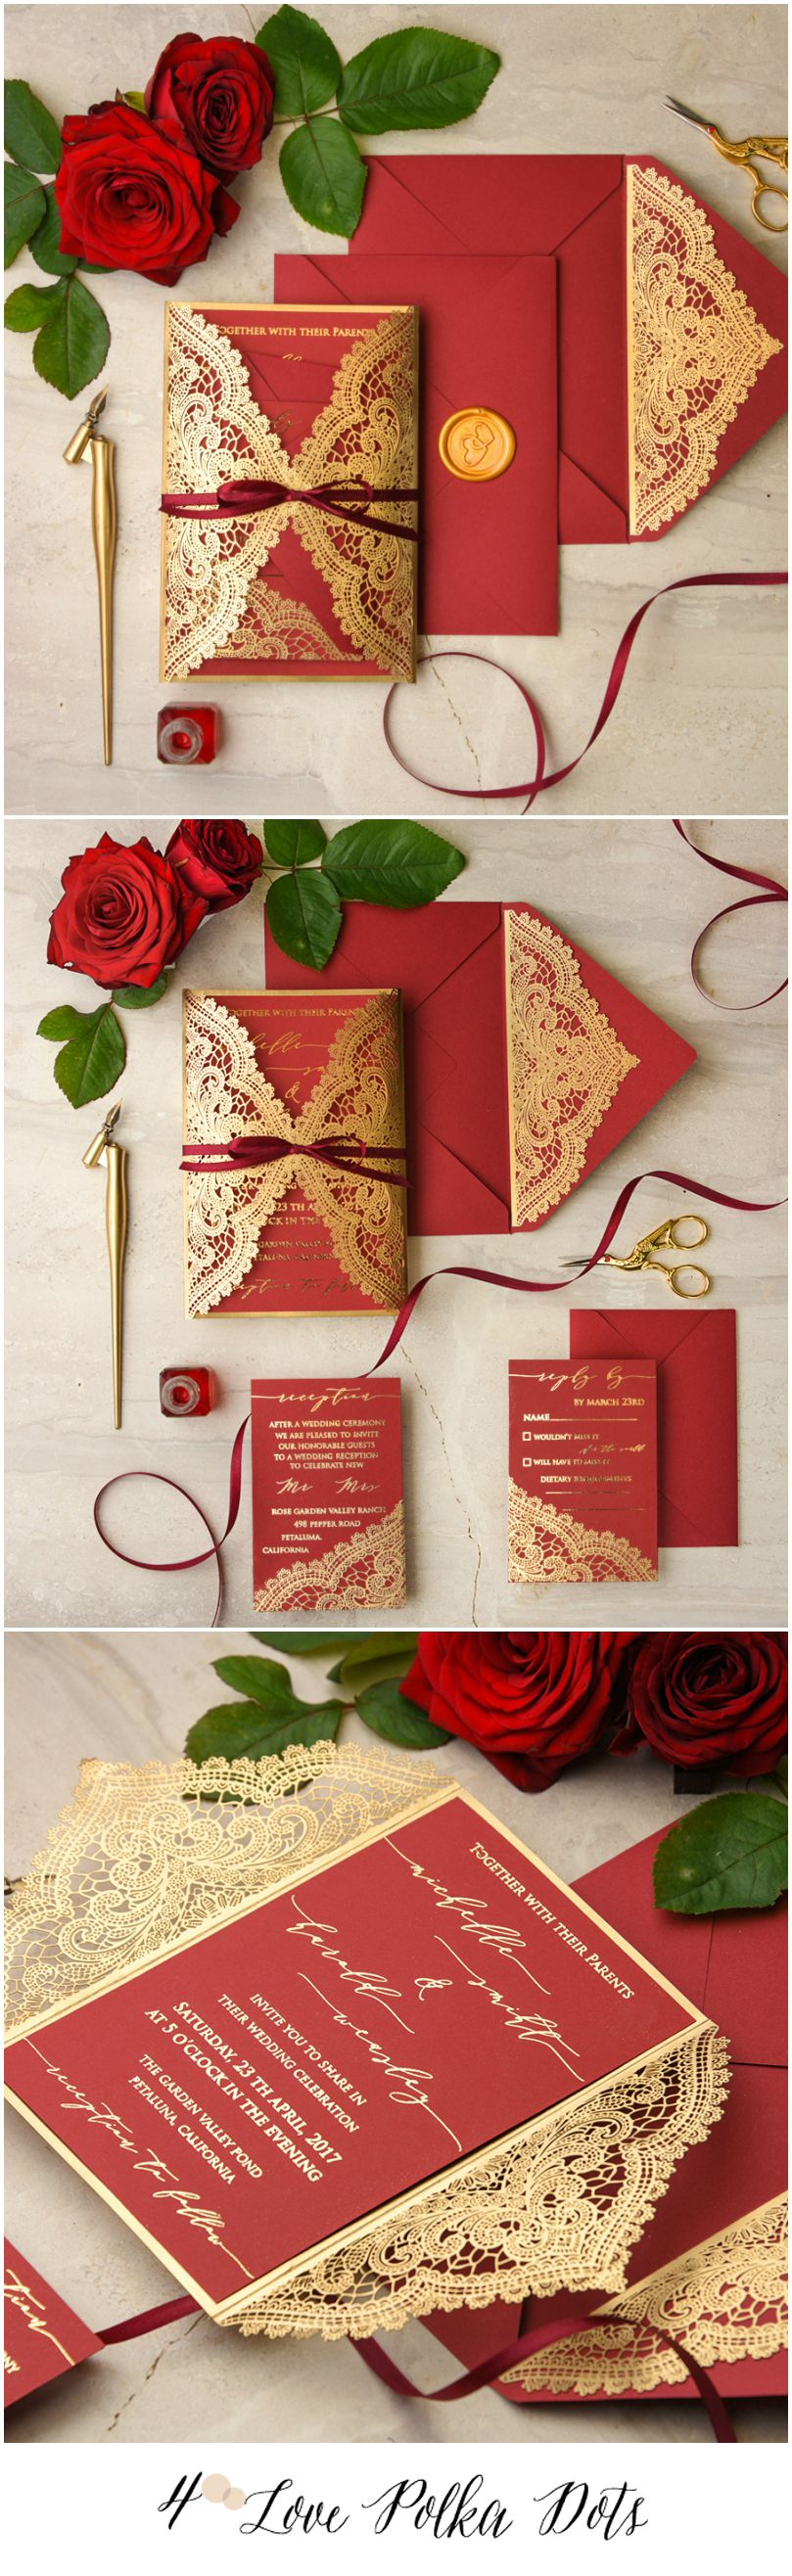 chinese wedding invitation card in malaysia%0A Red  u     Gold laser cut lace romantic wedding invitations  sponsored